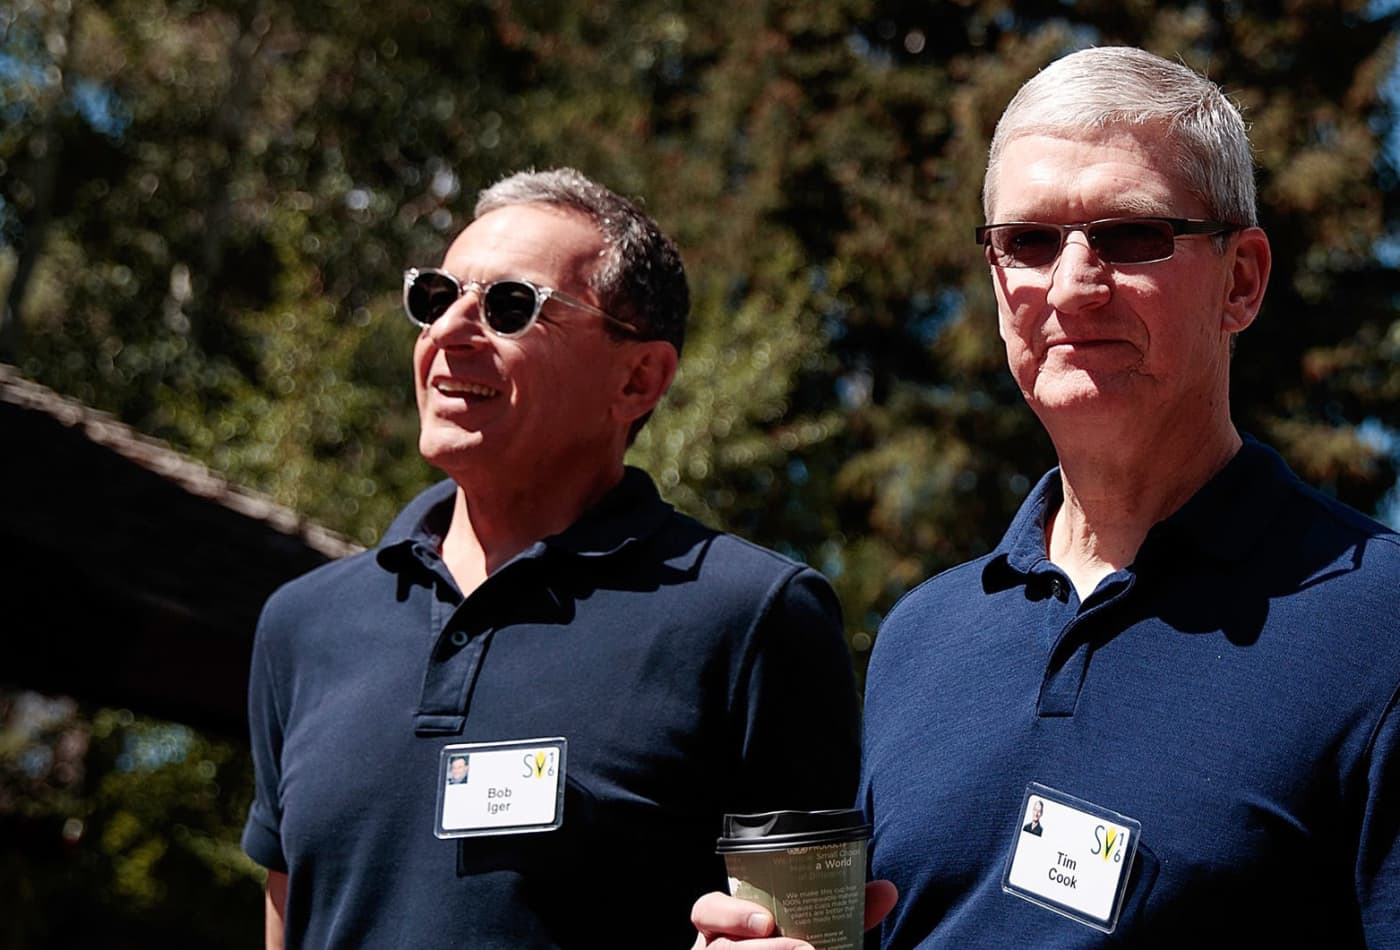 Disney CEO Bob Iger resigns from Apple board as companies come into conflict on streaming